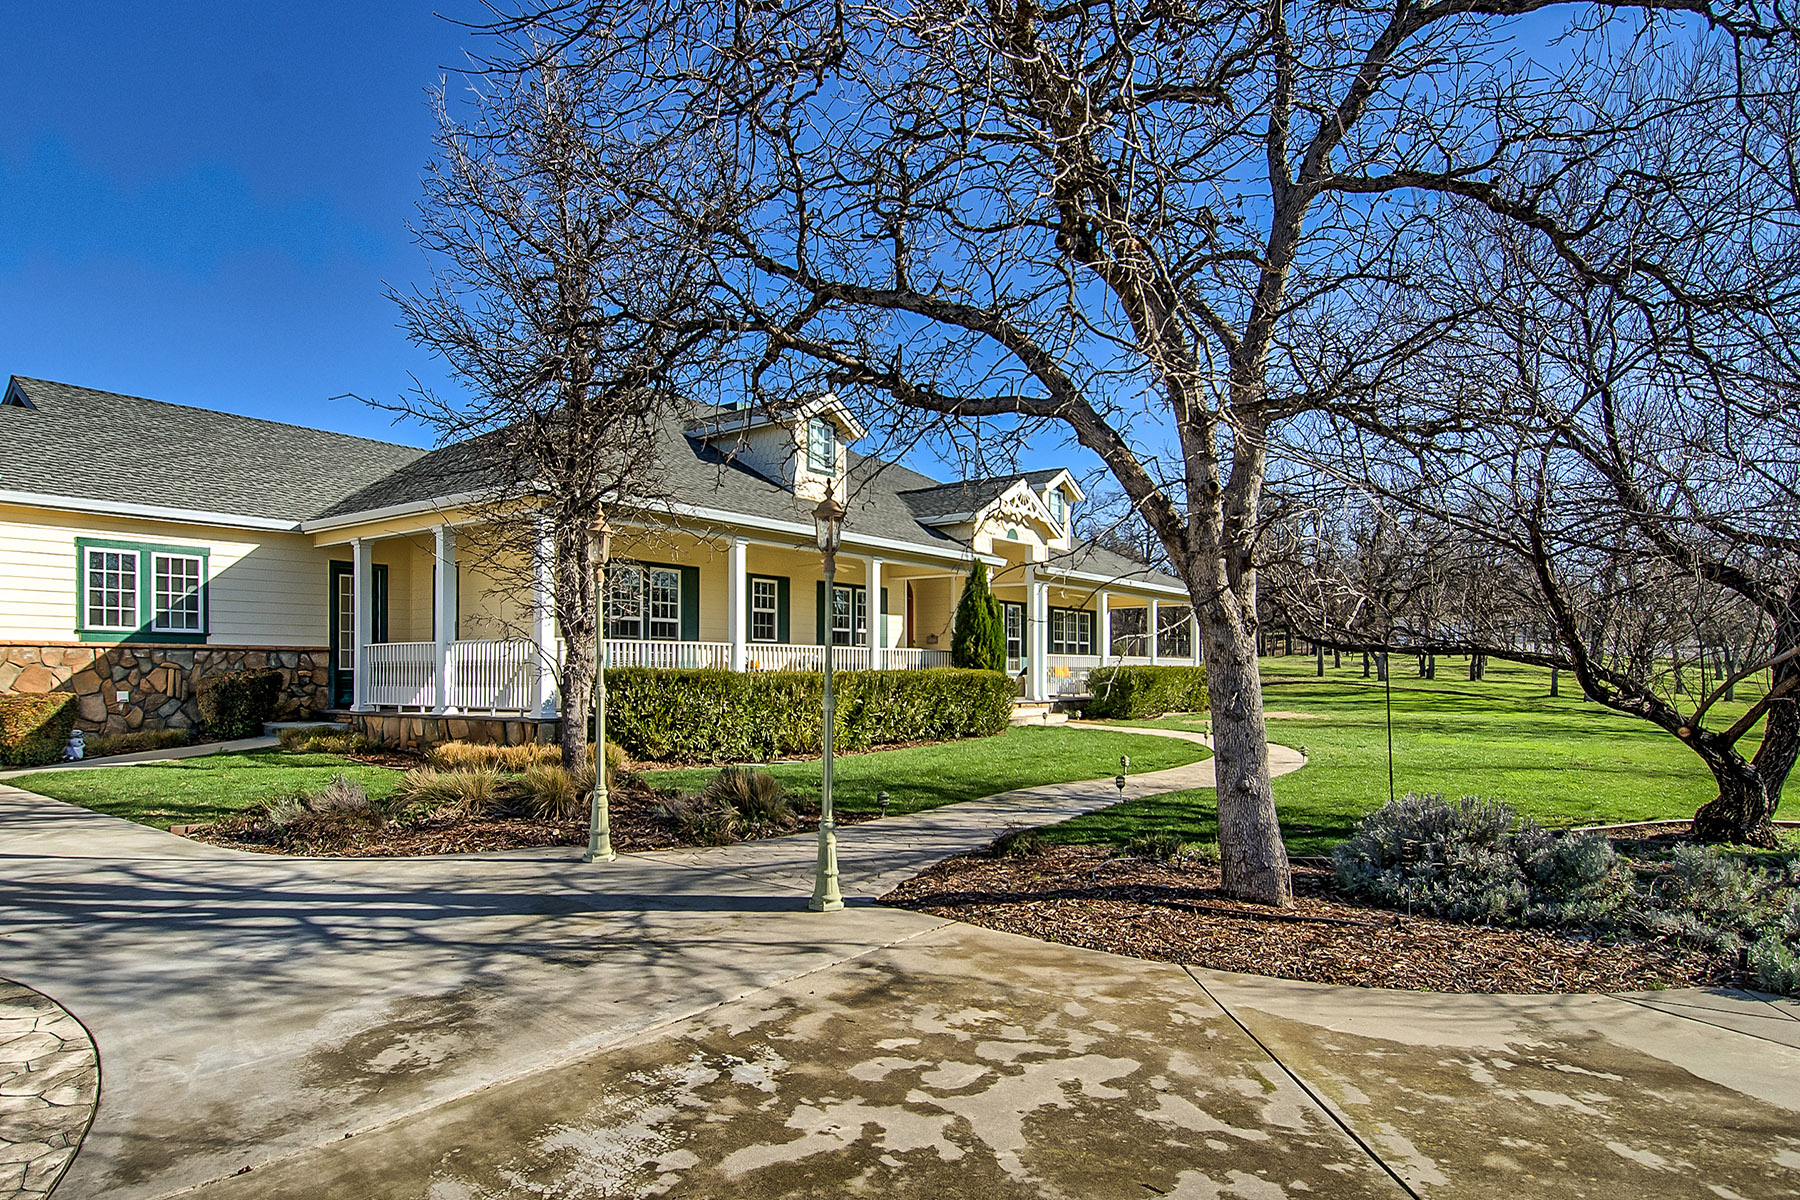 Single Family Home for Sale at Country Estate in North East Redding 13424 Lark Court Redding, California 96003 United States